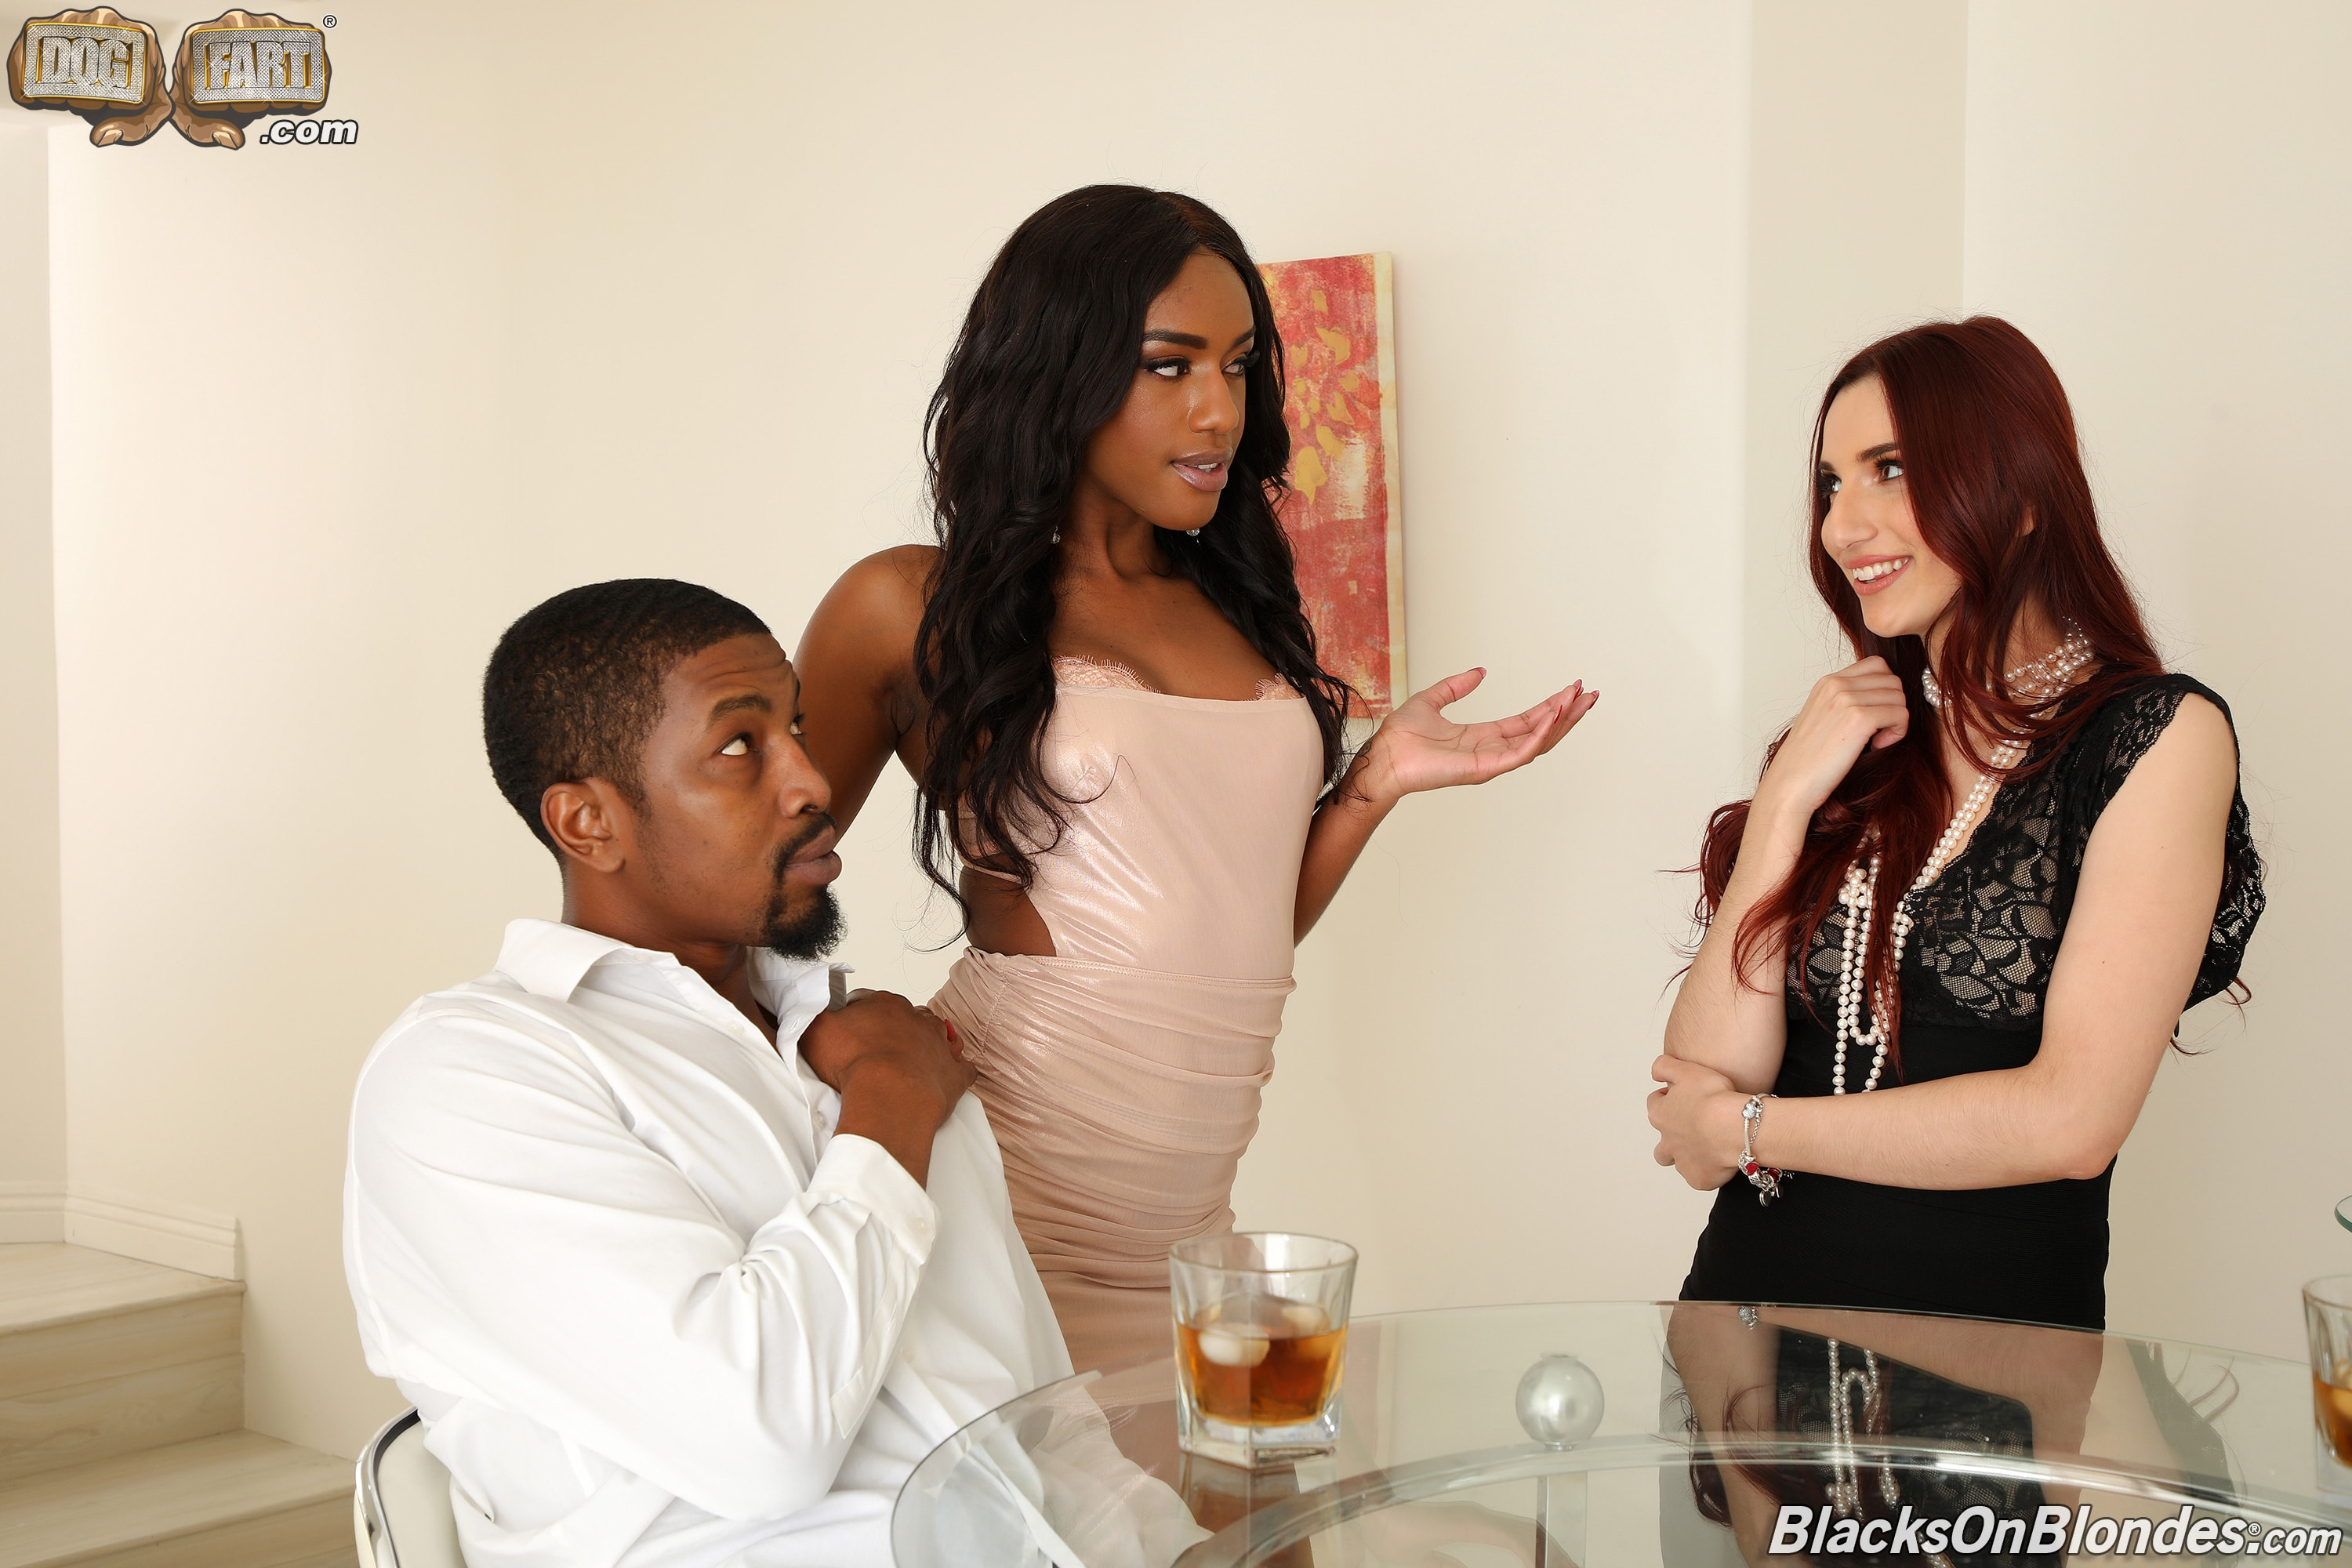 Dogfart 'and April Snow - Blacks On Blondes' starring Ashley Aleigh (Photo 3)